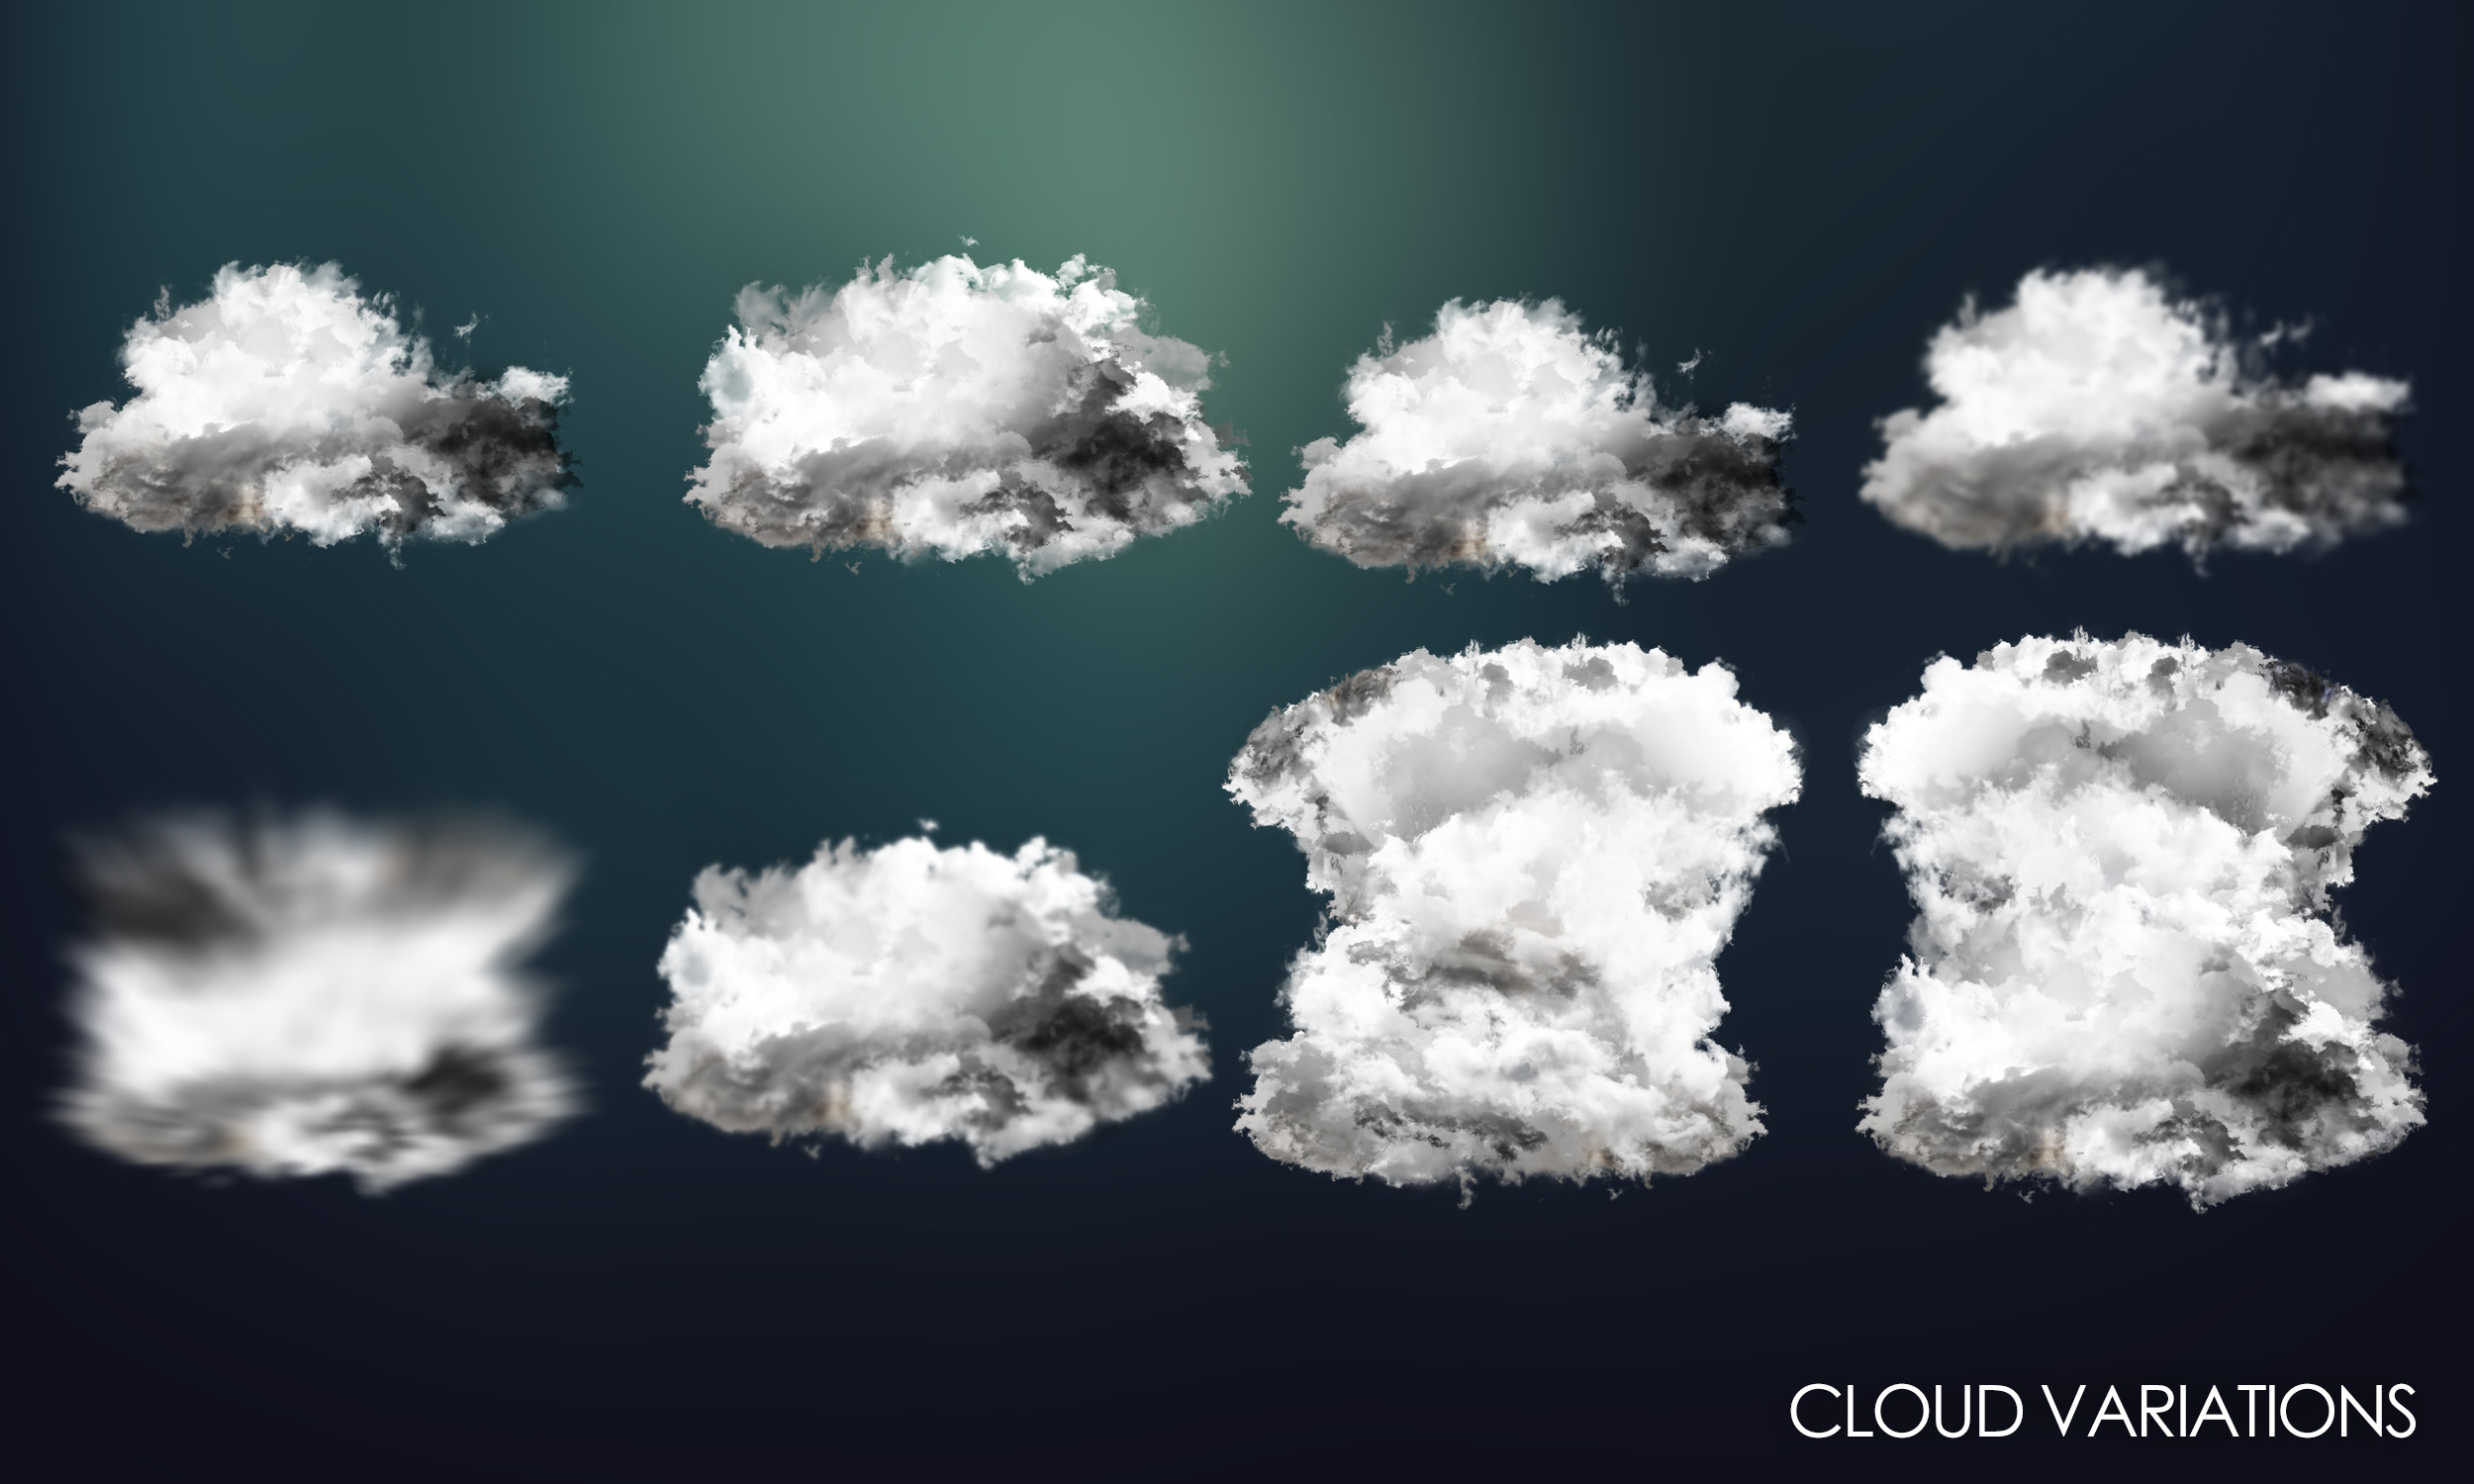 Cloud Variations